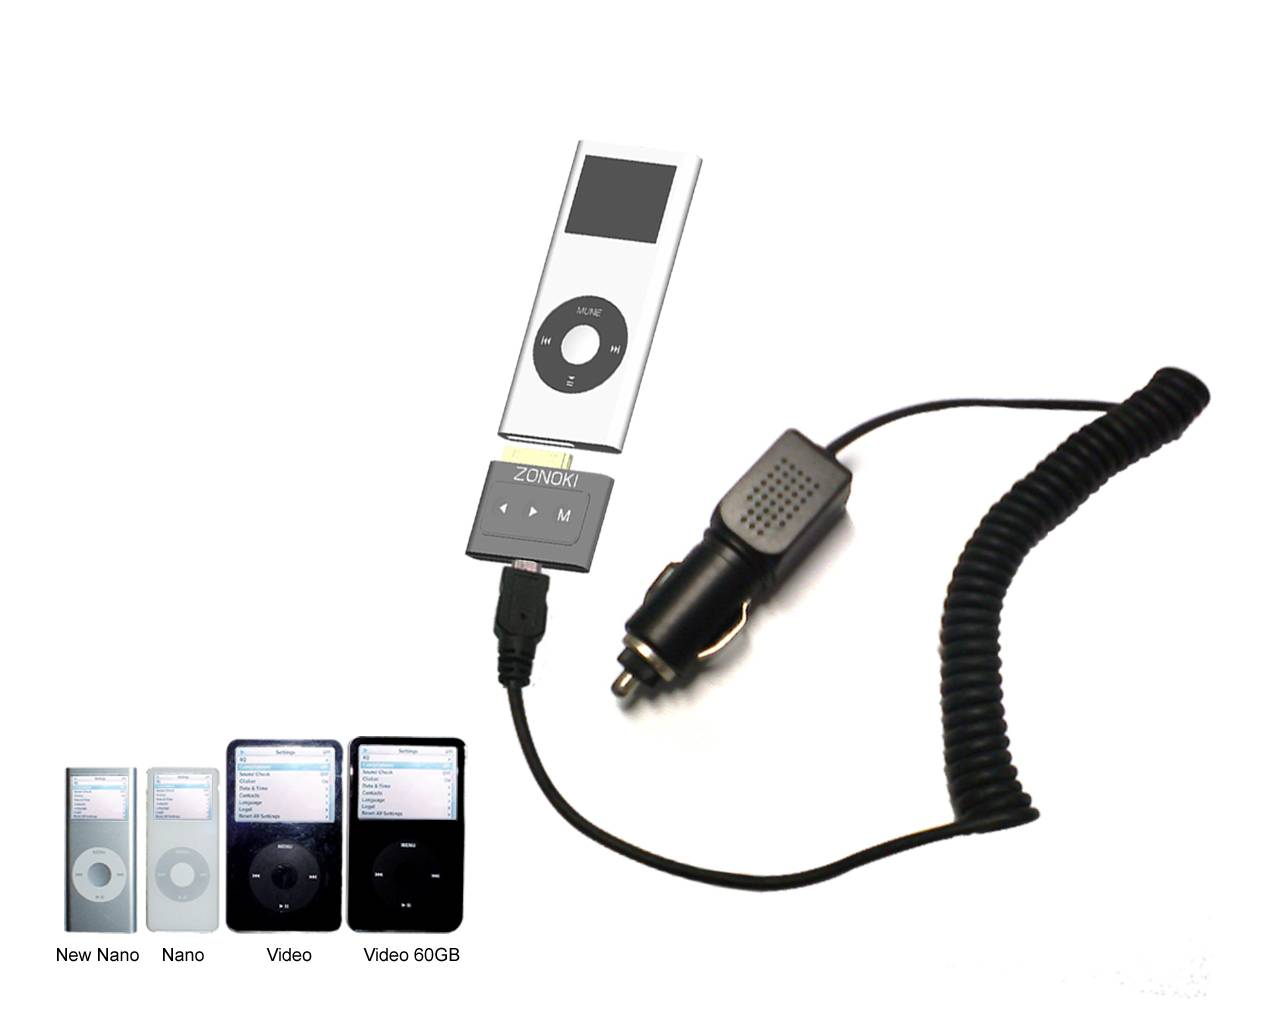 z-1380-iPod Chargeable FM Transmitter